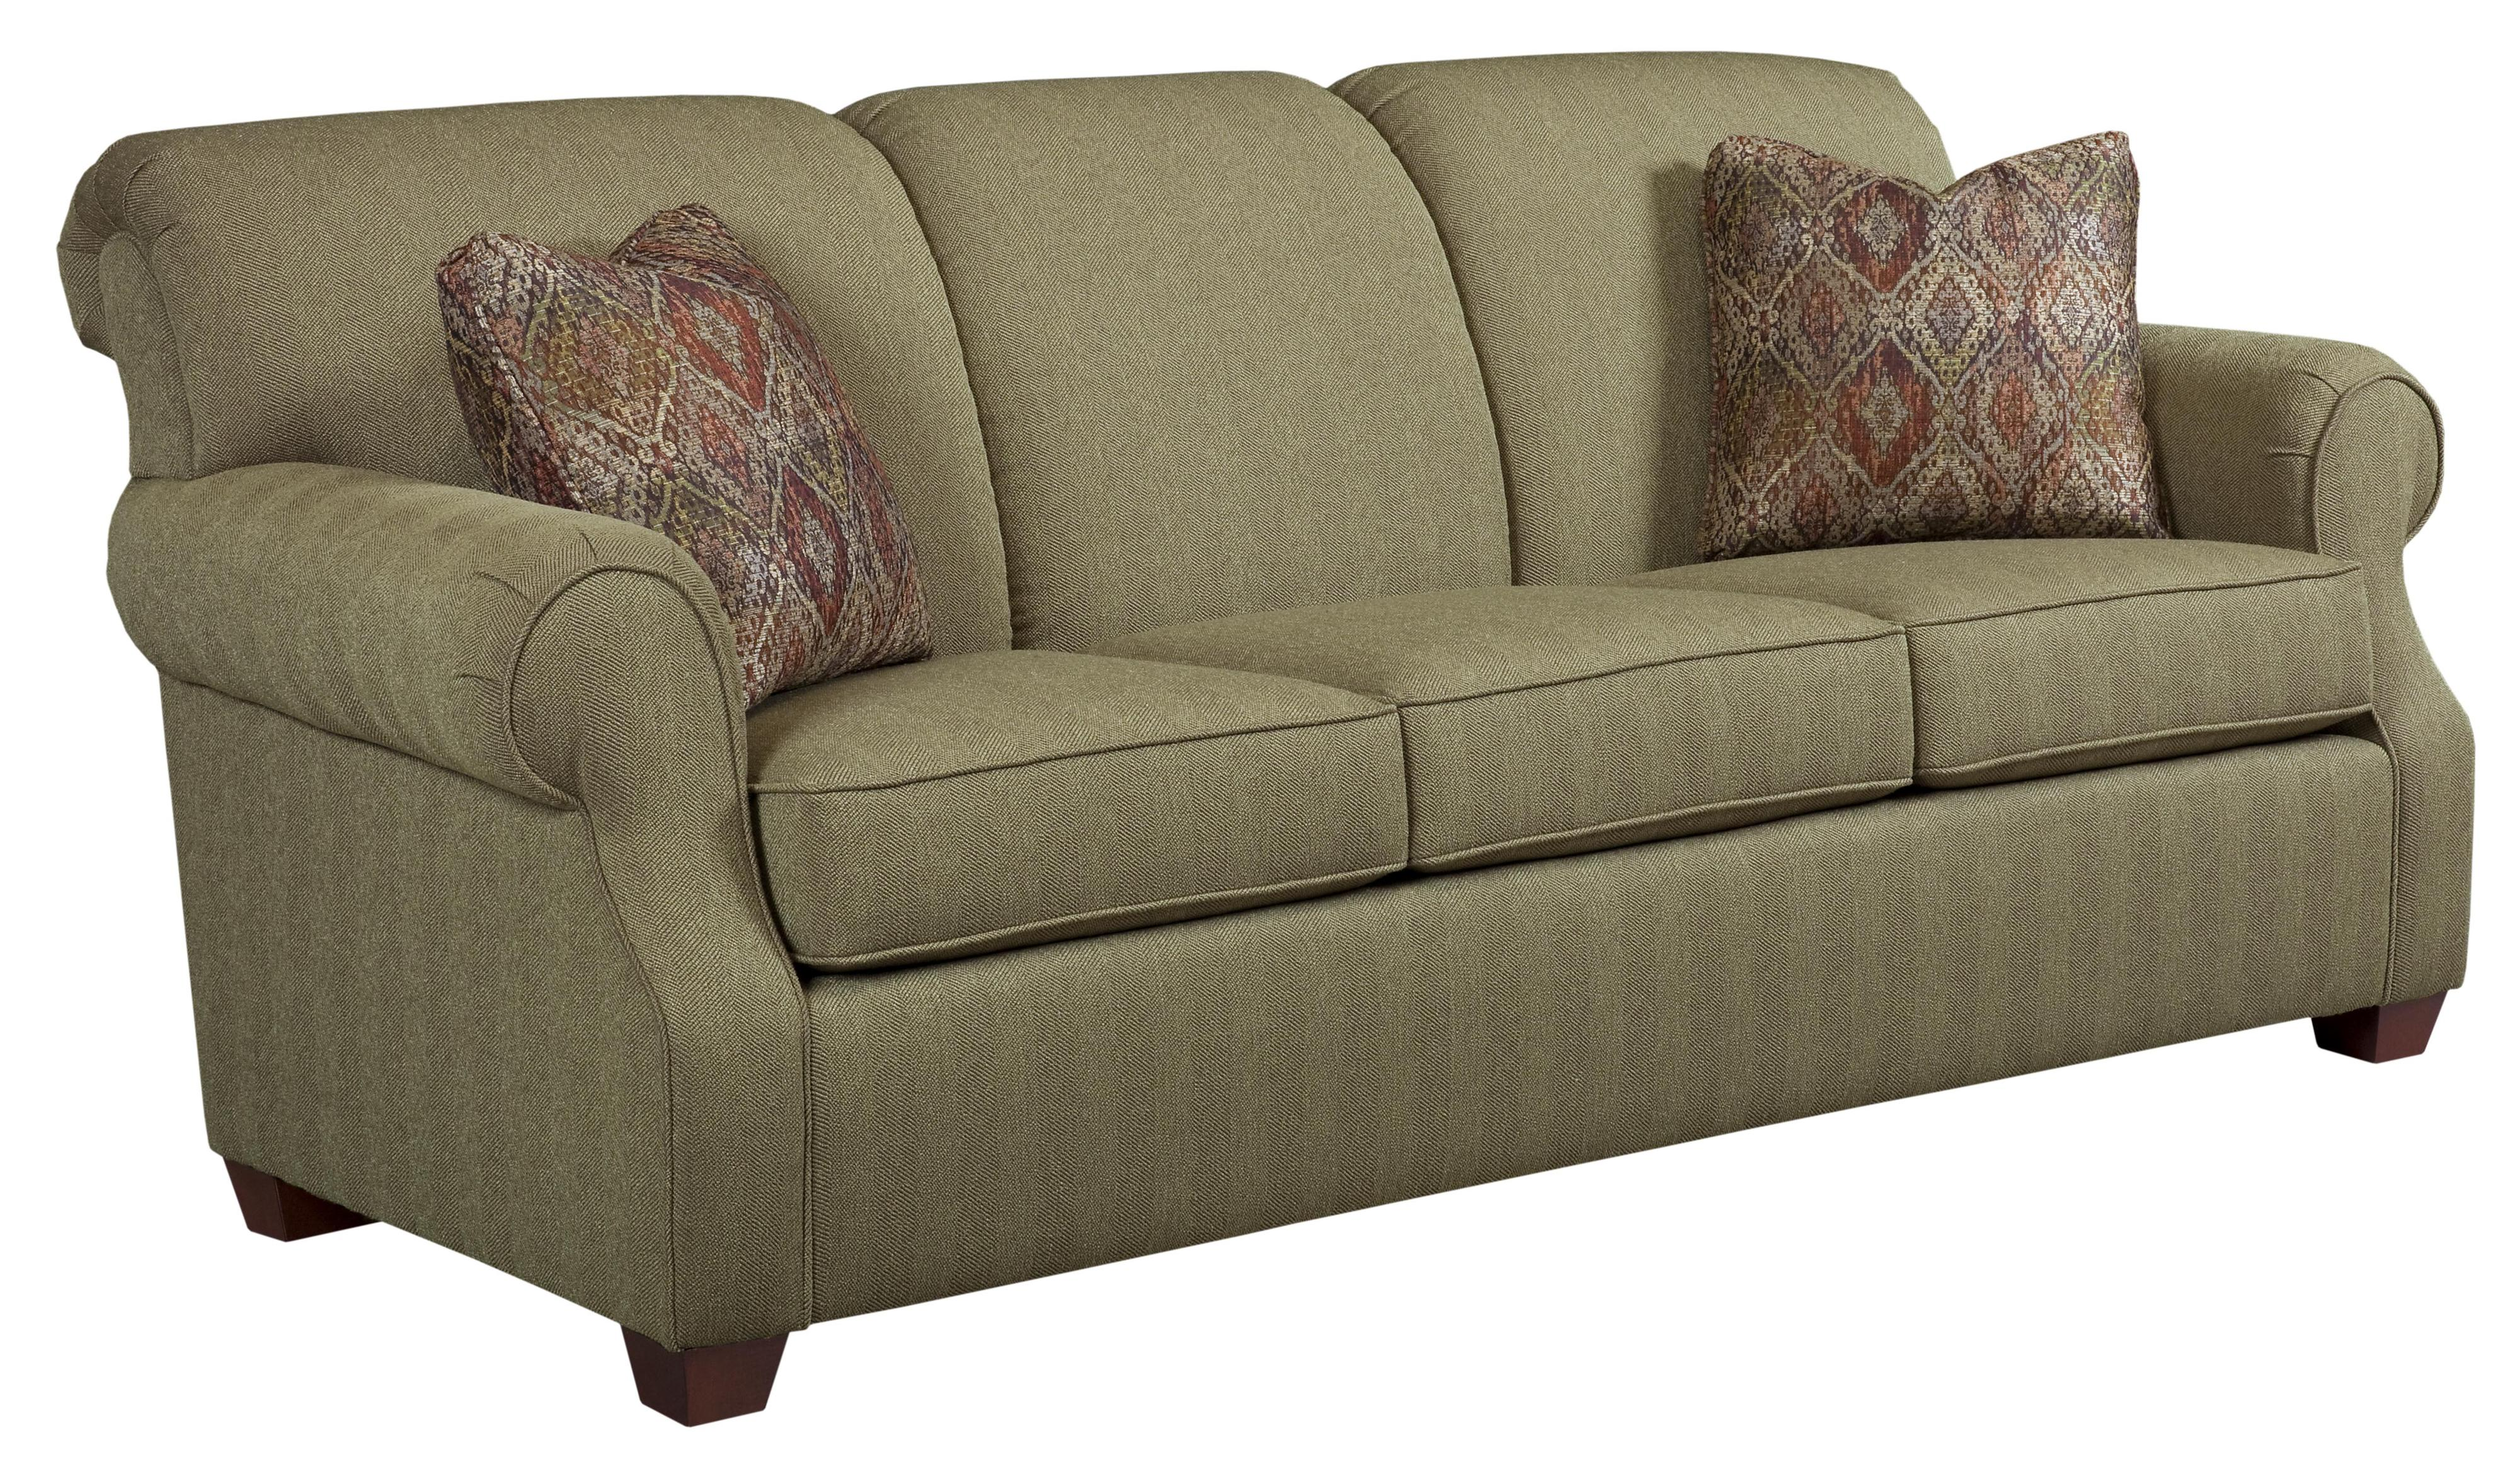 kincaid sofas reviews jennifer convertible sofa bed furniture lynchburg with rolled back and